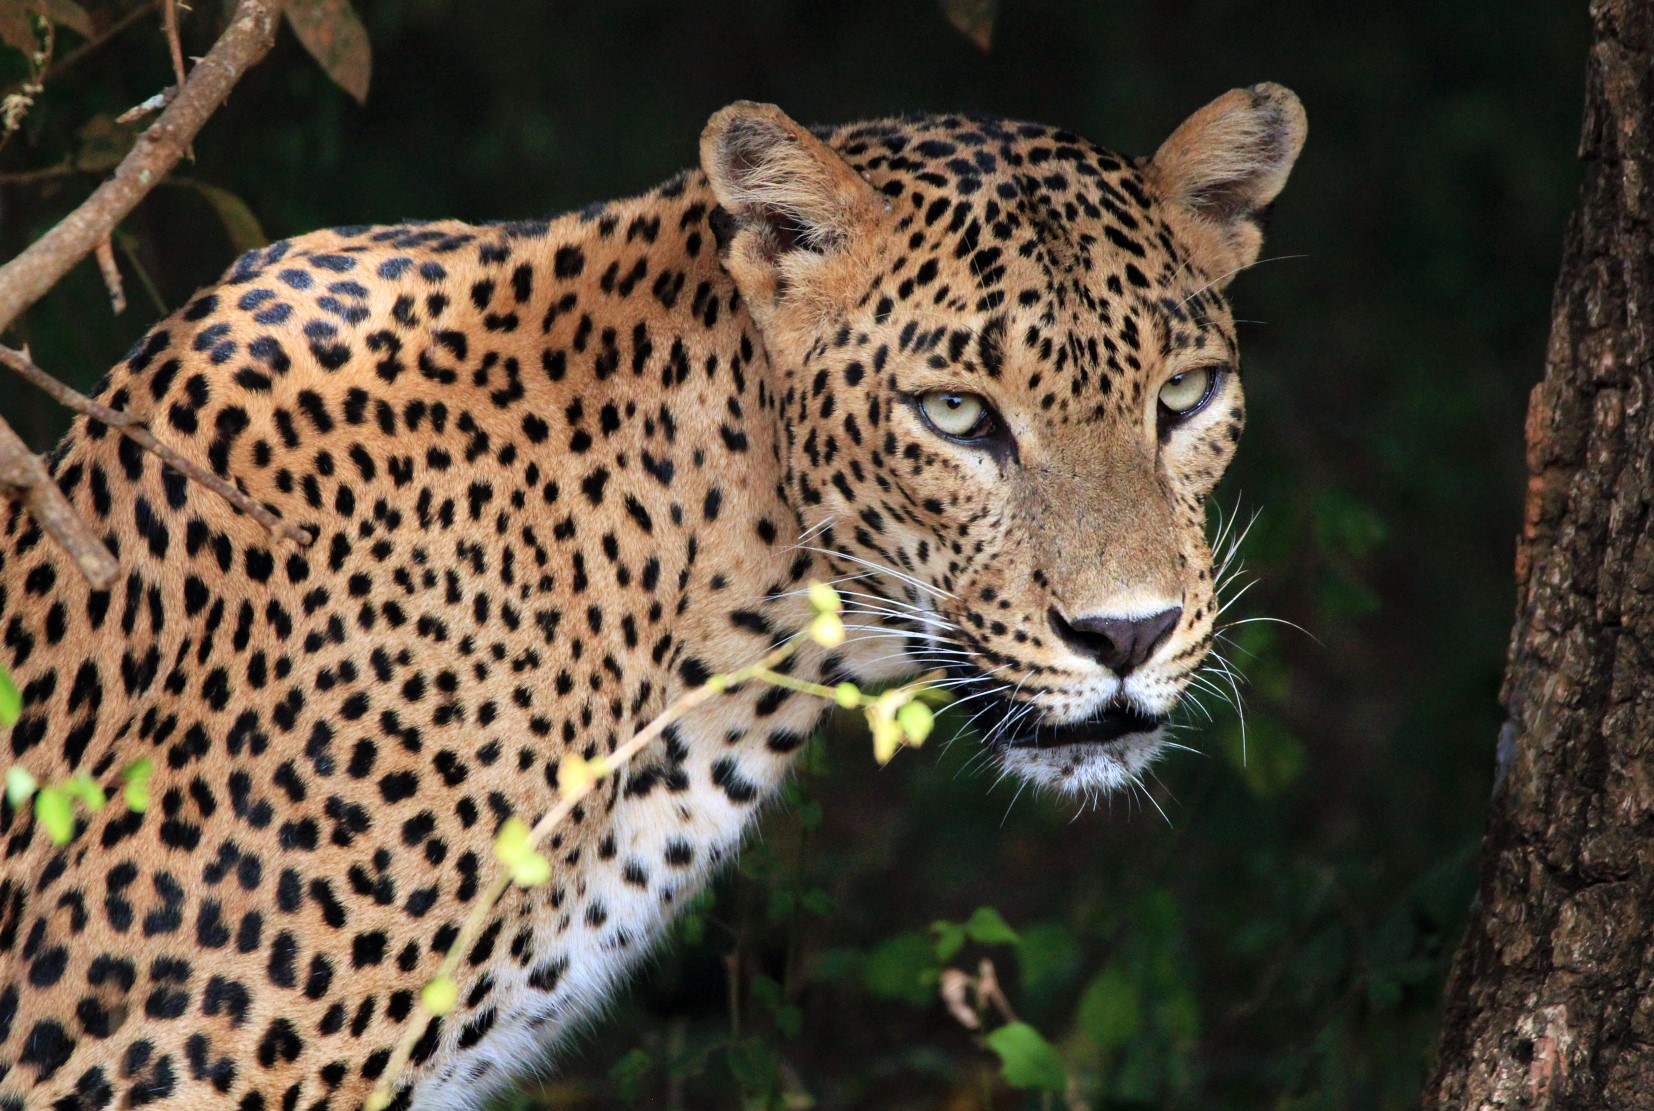 Sri Lankan Leopard Yala National Park Sri Lanka India Tours and Travel Specialists